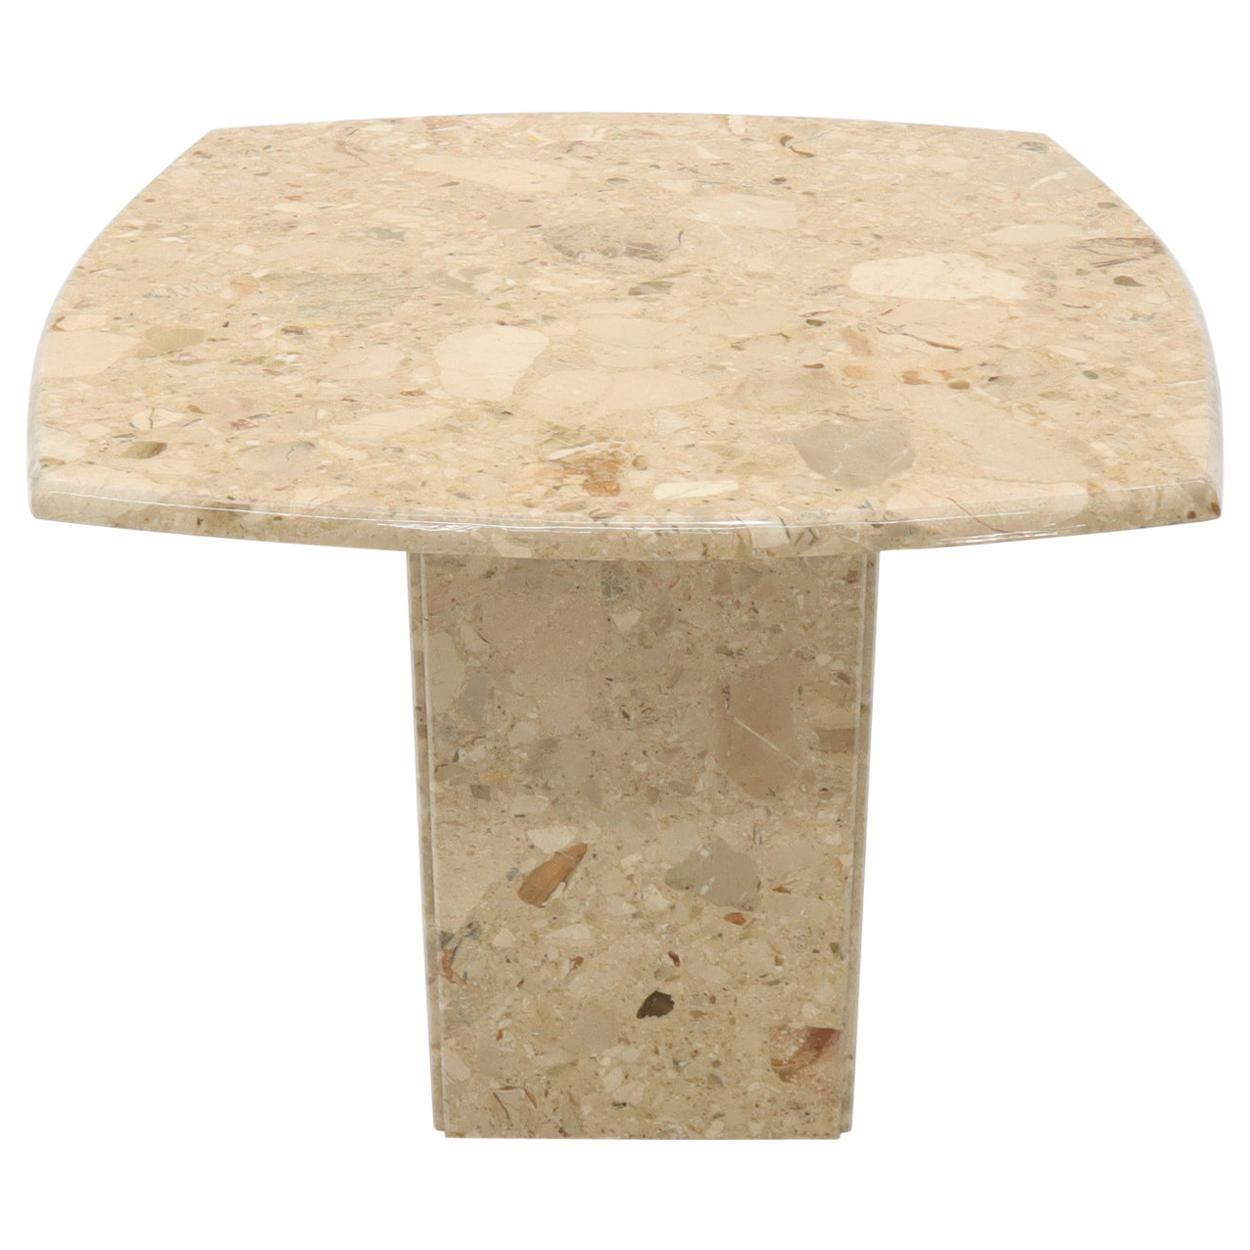 Travertine Rounded Square Side Occasional Coffee Table Stand